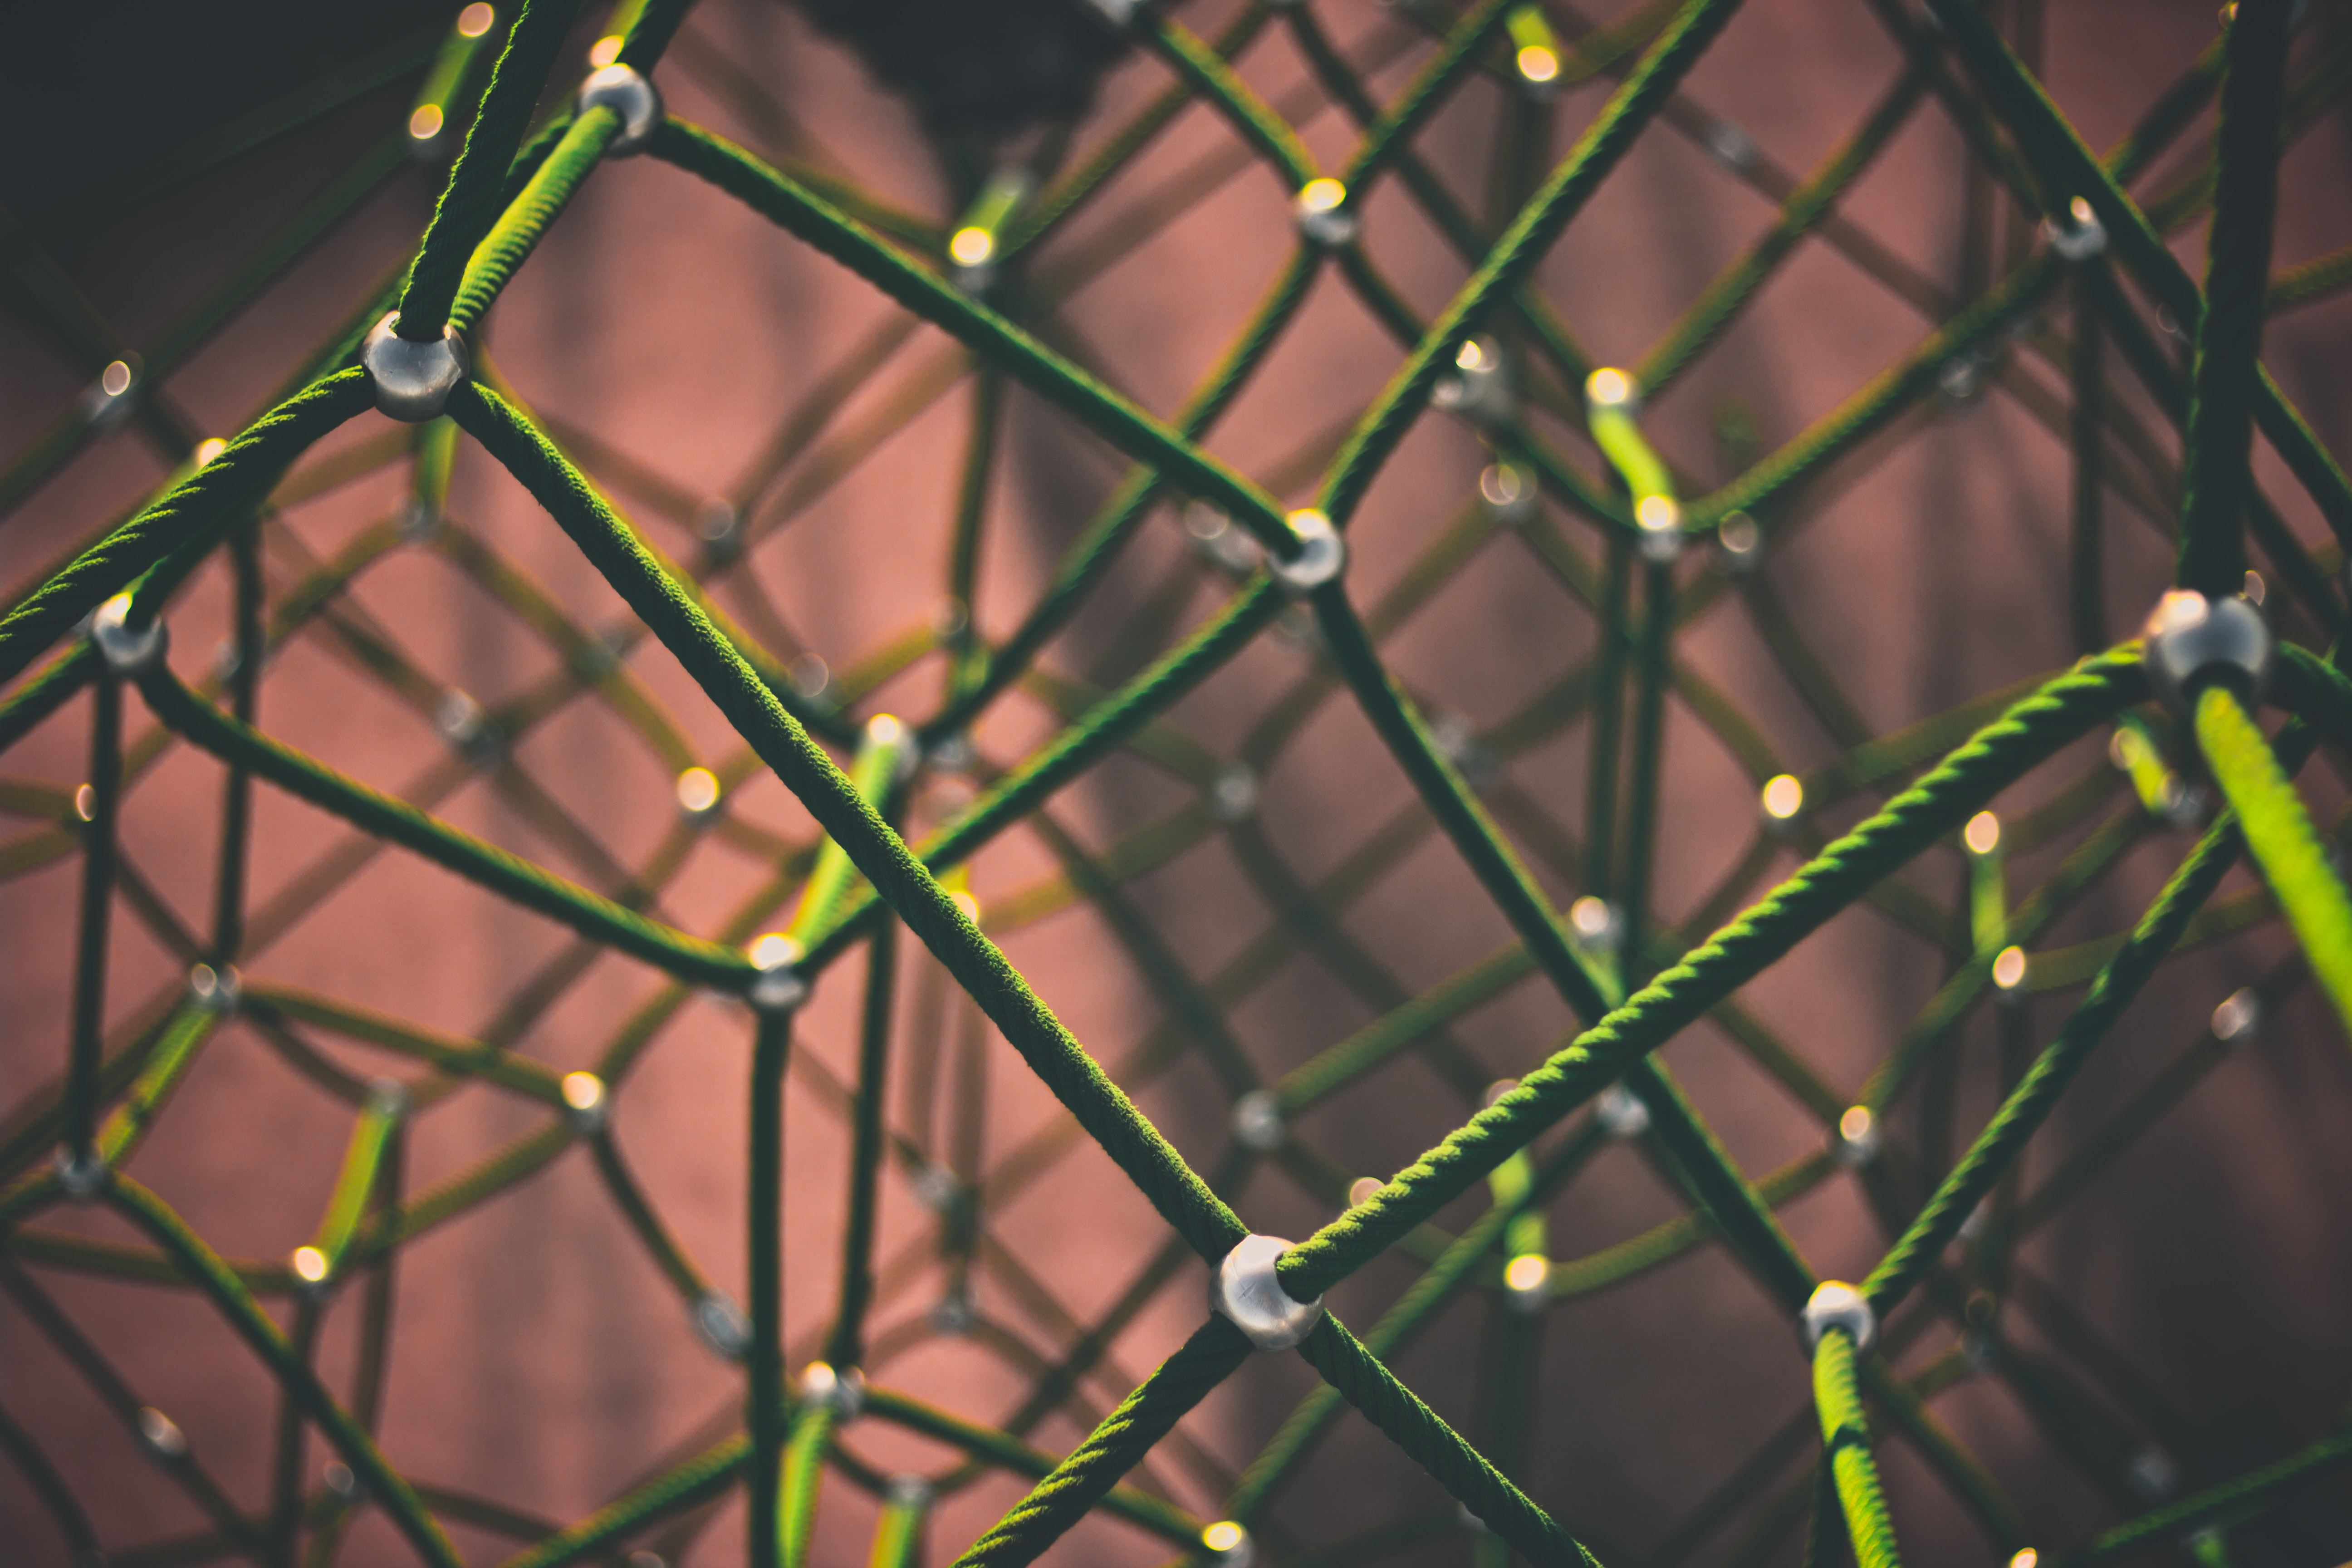 A meshwork of green ropes against a red background